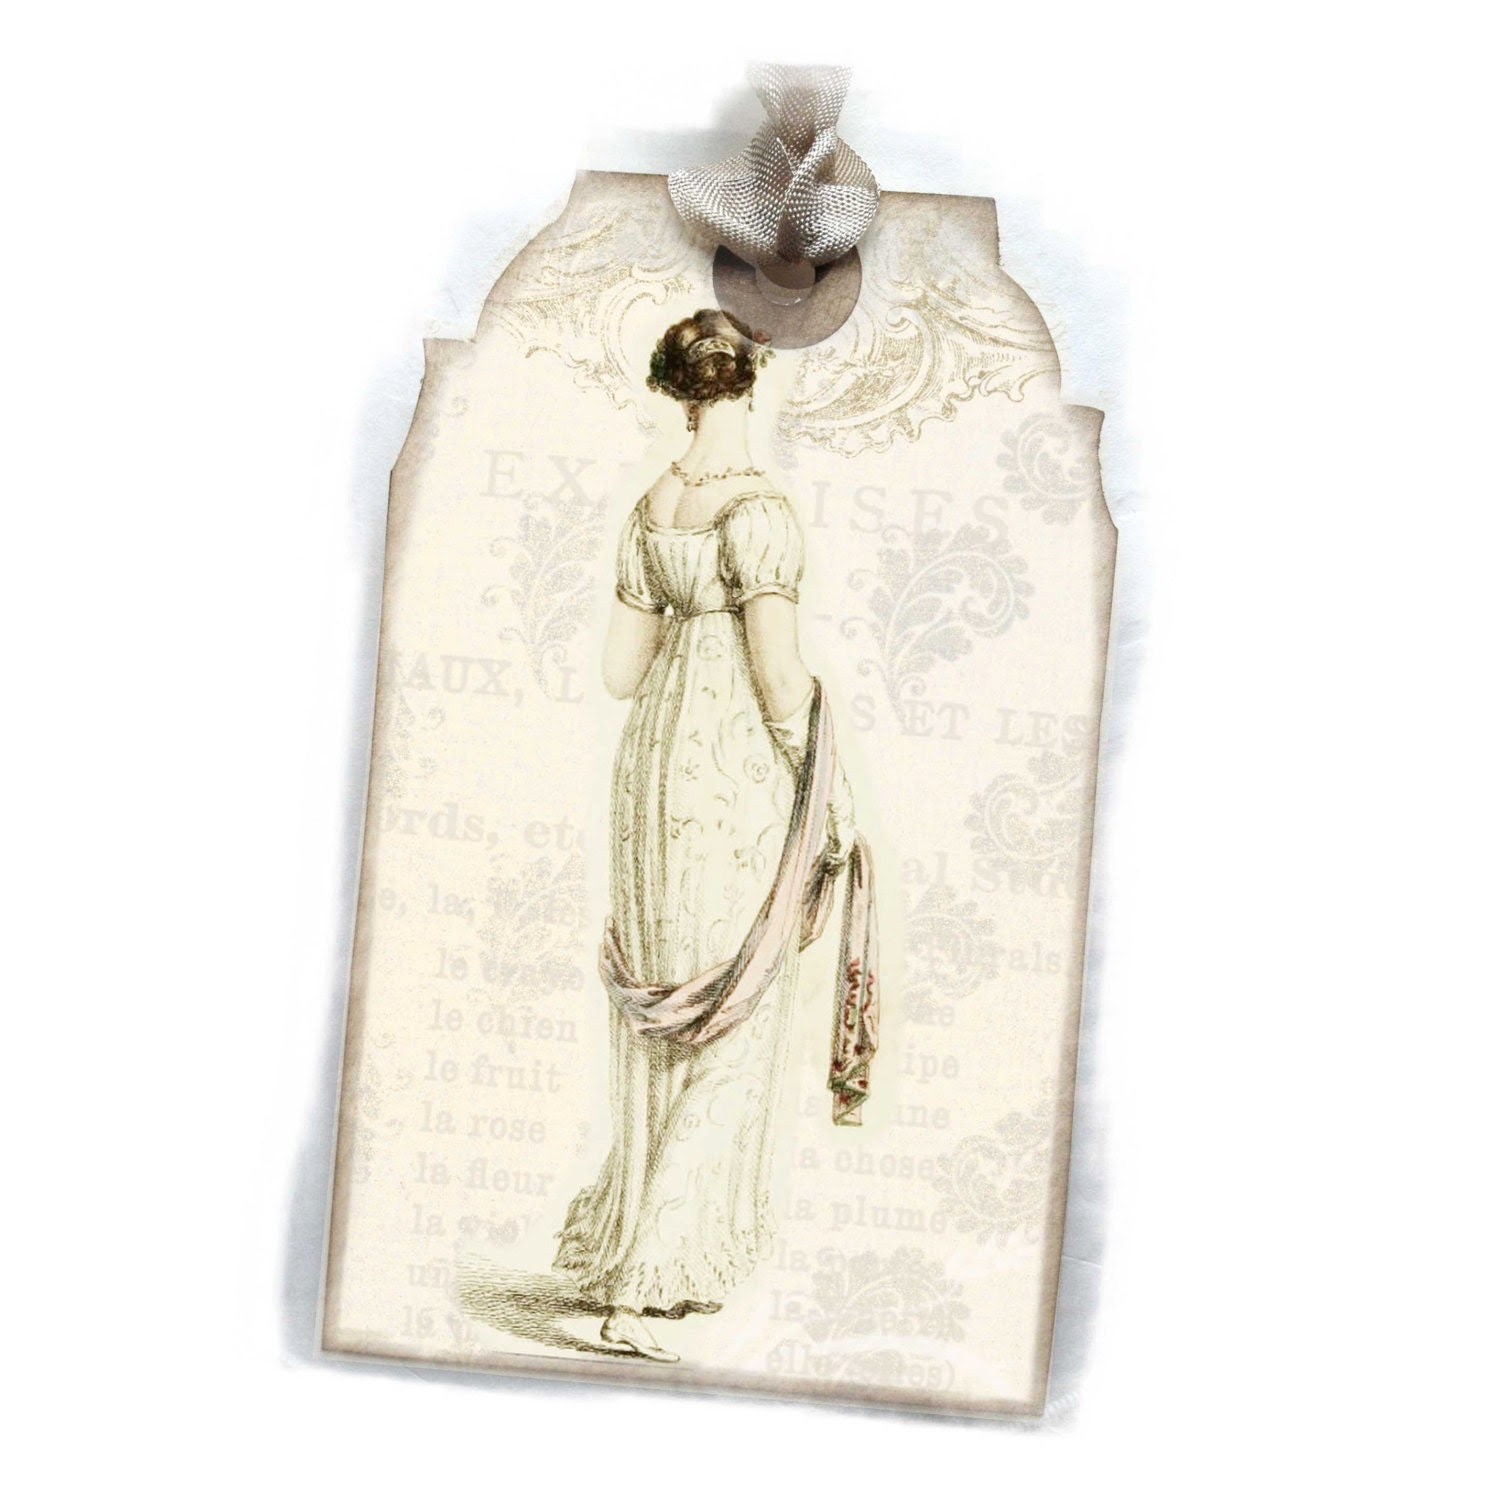 Jane Austen Tag Gift Tag Six Regency 19th Century Bridal  Paris Fashion Beauties  Bookmark Pale Gray and Cream - lacegrl130